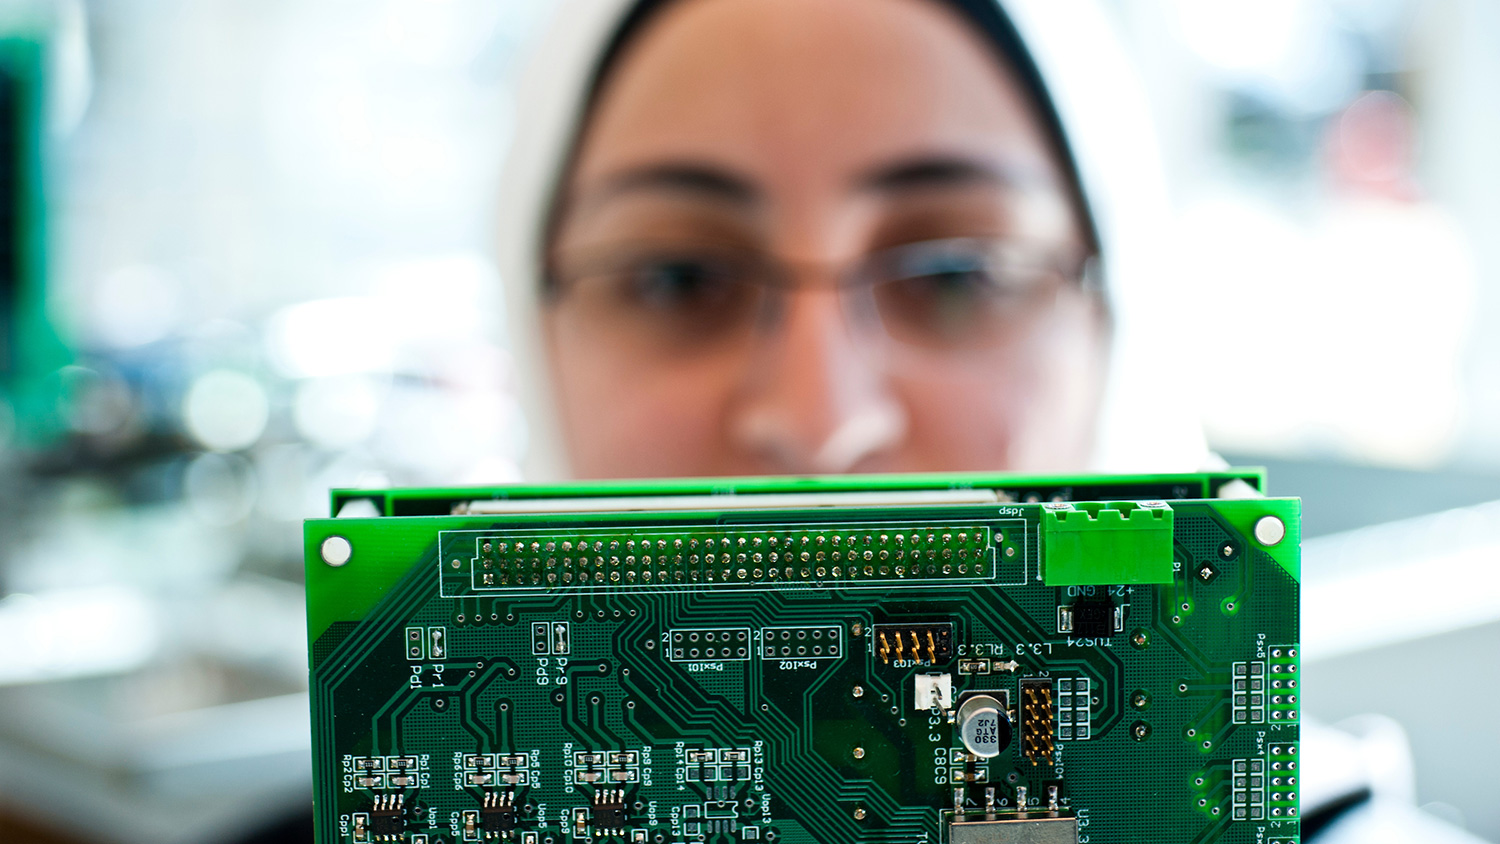 A woman examines a large block of electrical chips.